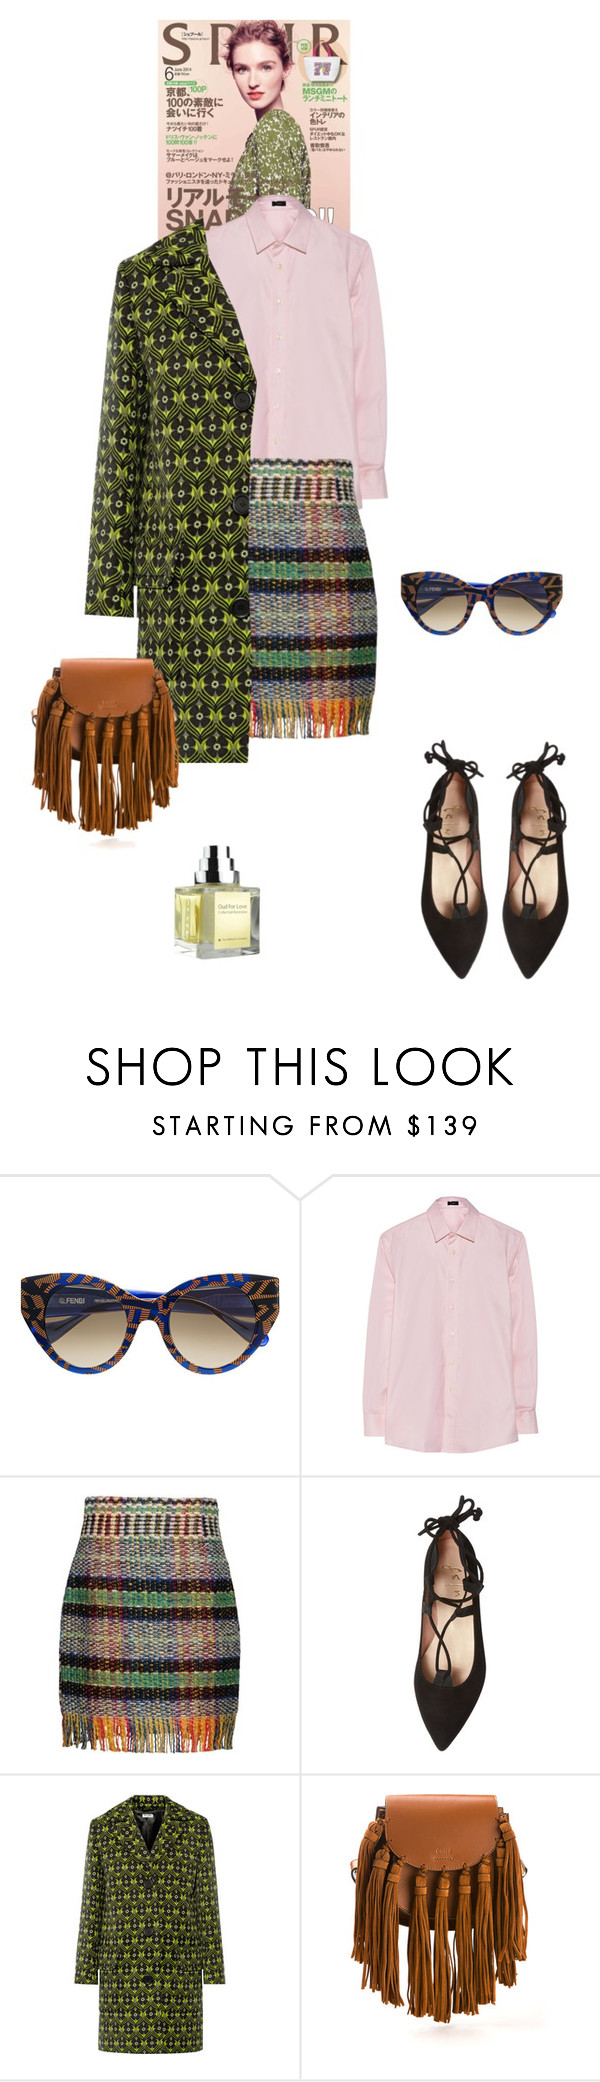 Hello, my love... by katelyn999 on Polyvore featuring Joseph, Miu Miu, Alberta Ferretti, French Sole FS/NY, Chloé, Thierry Lasry and The Different Company